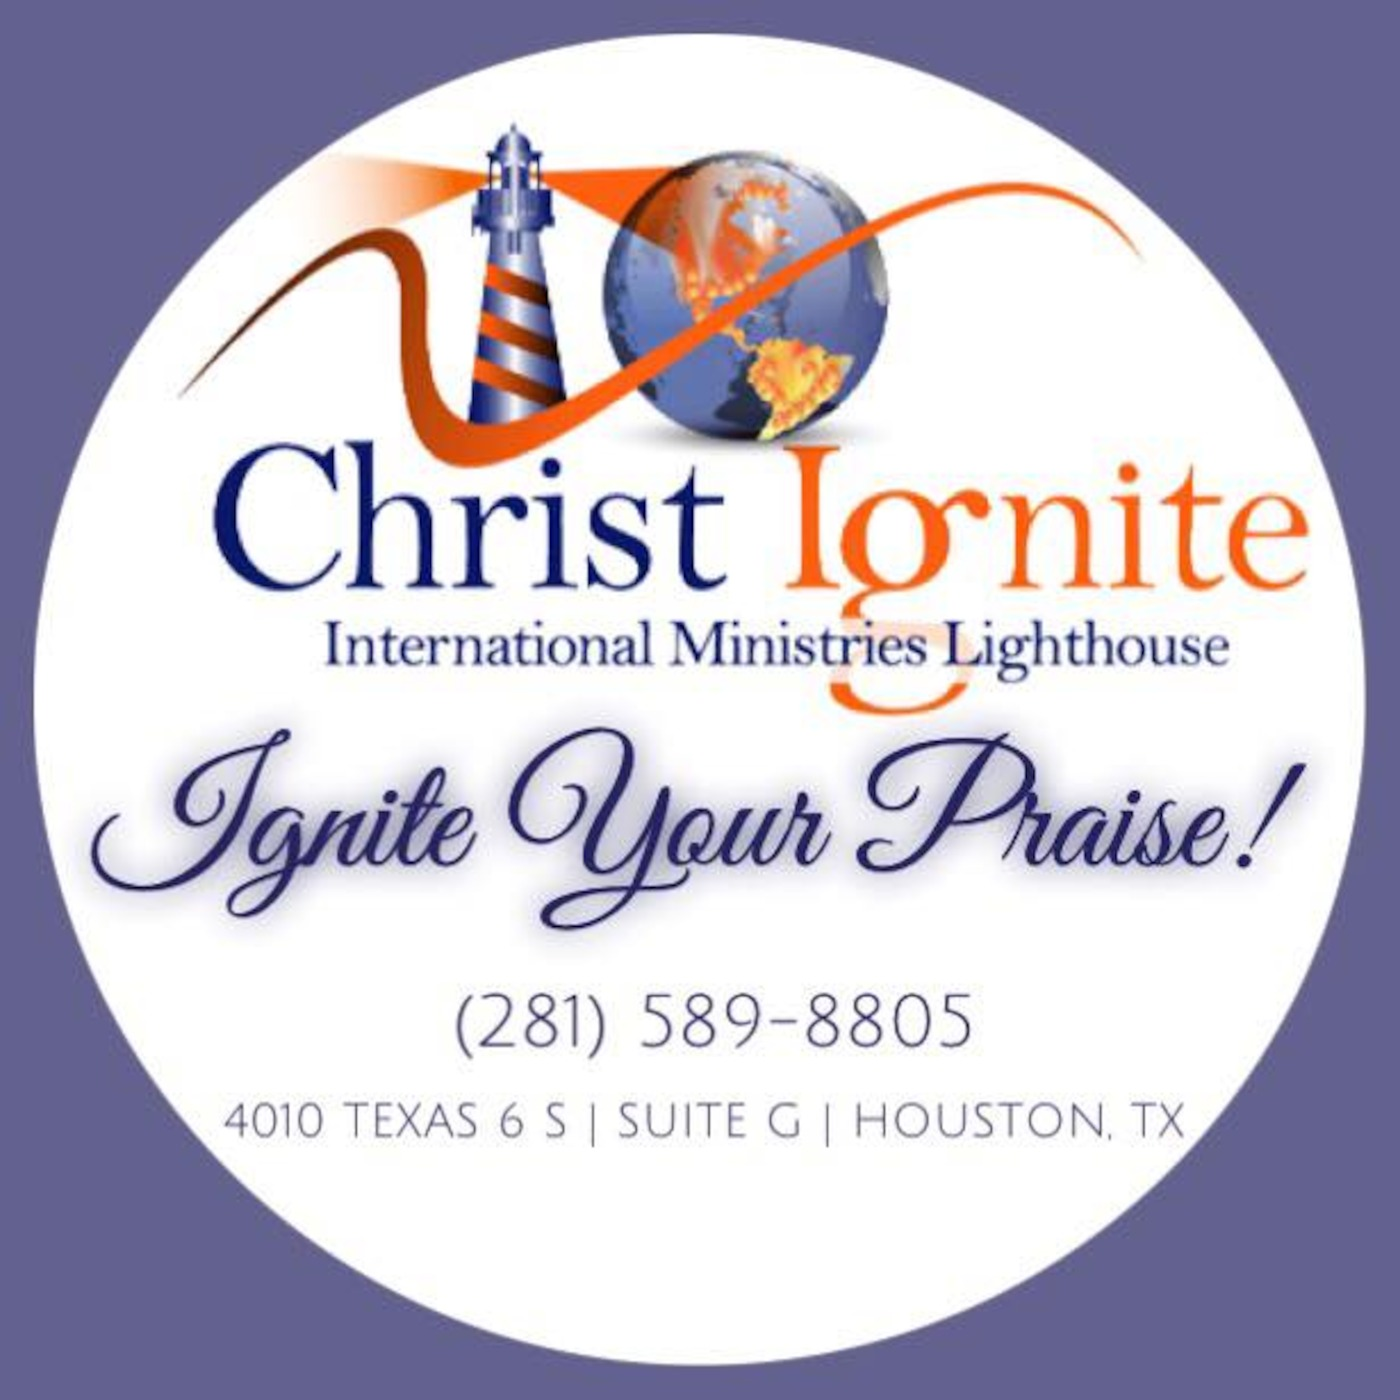 Christ Ignite International Ministries Lighthouse's Podcast